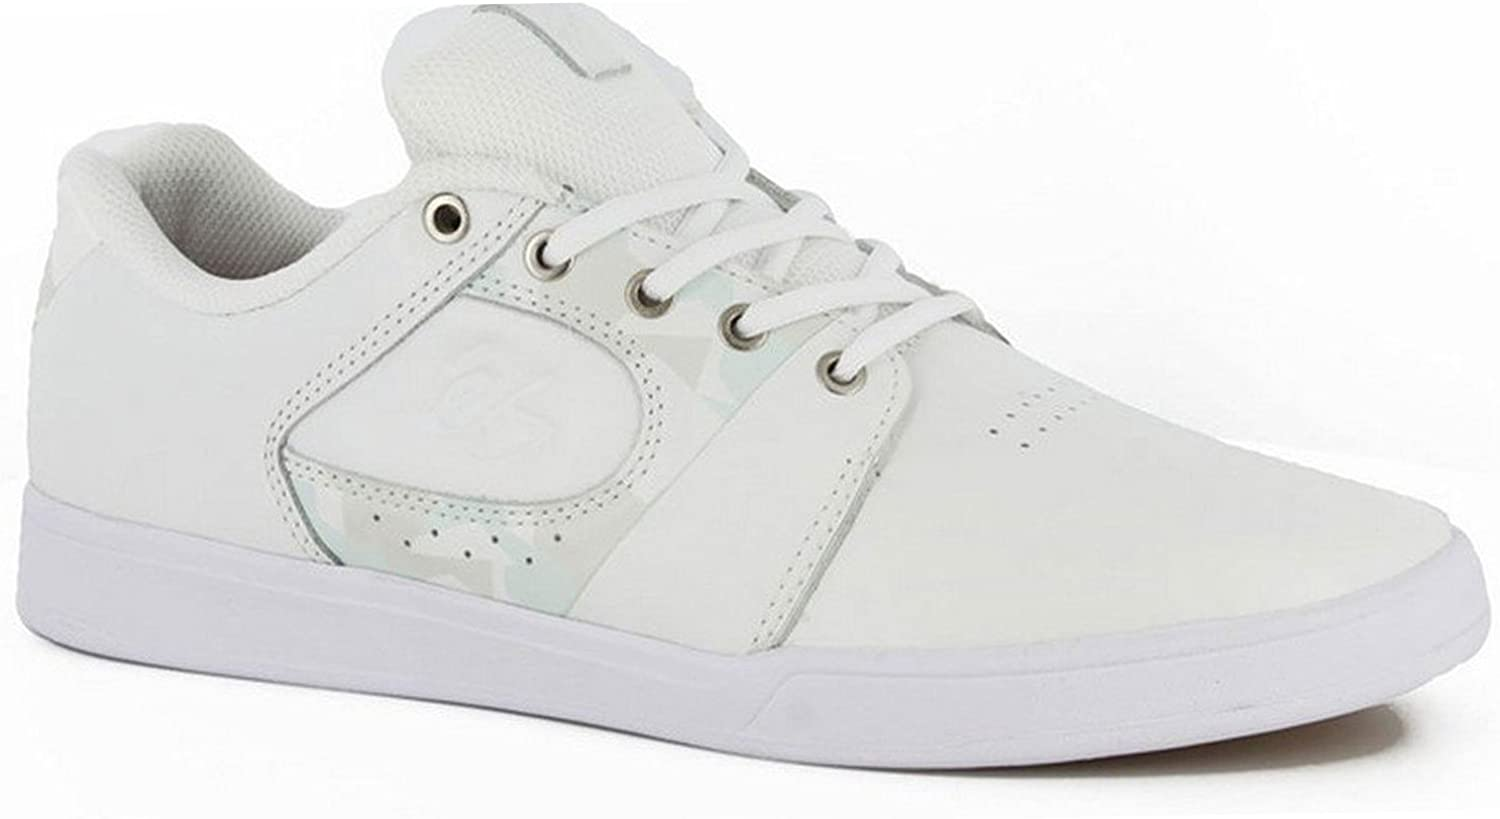 eS Skateboard Shoes The Accelerate White Gum